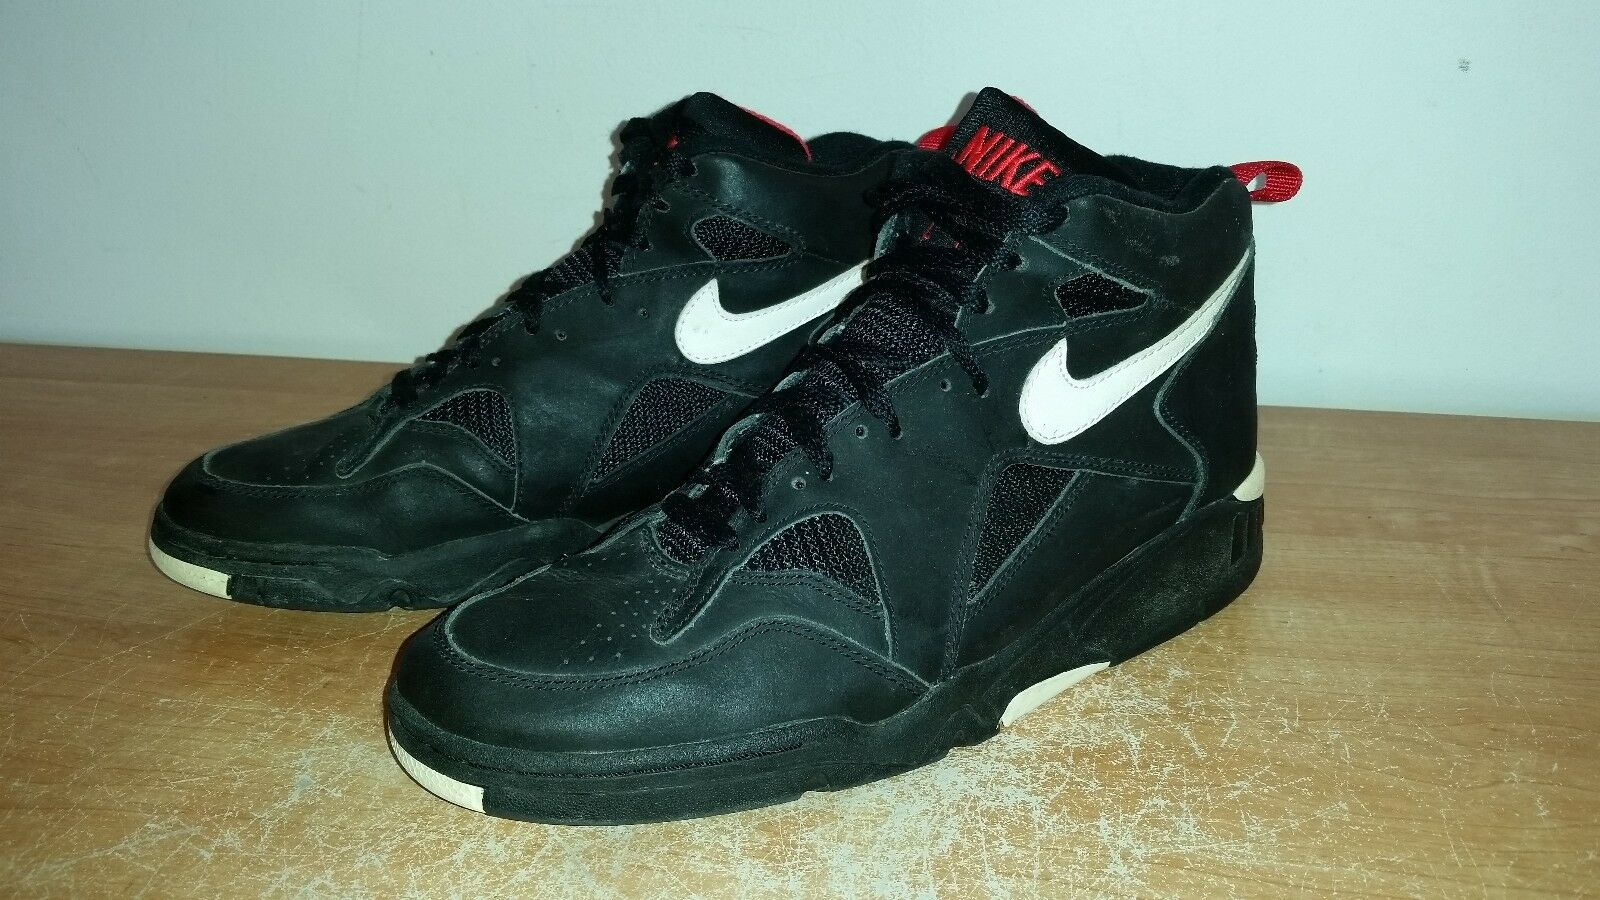 Men's Vintage 90s Black Leather NIKE AIR Mid Basketball Retro OG Sneakers Sz-10